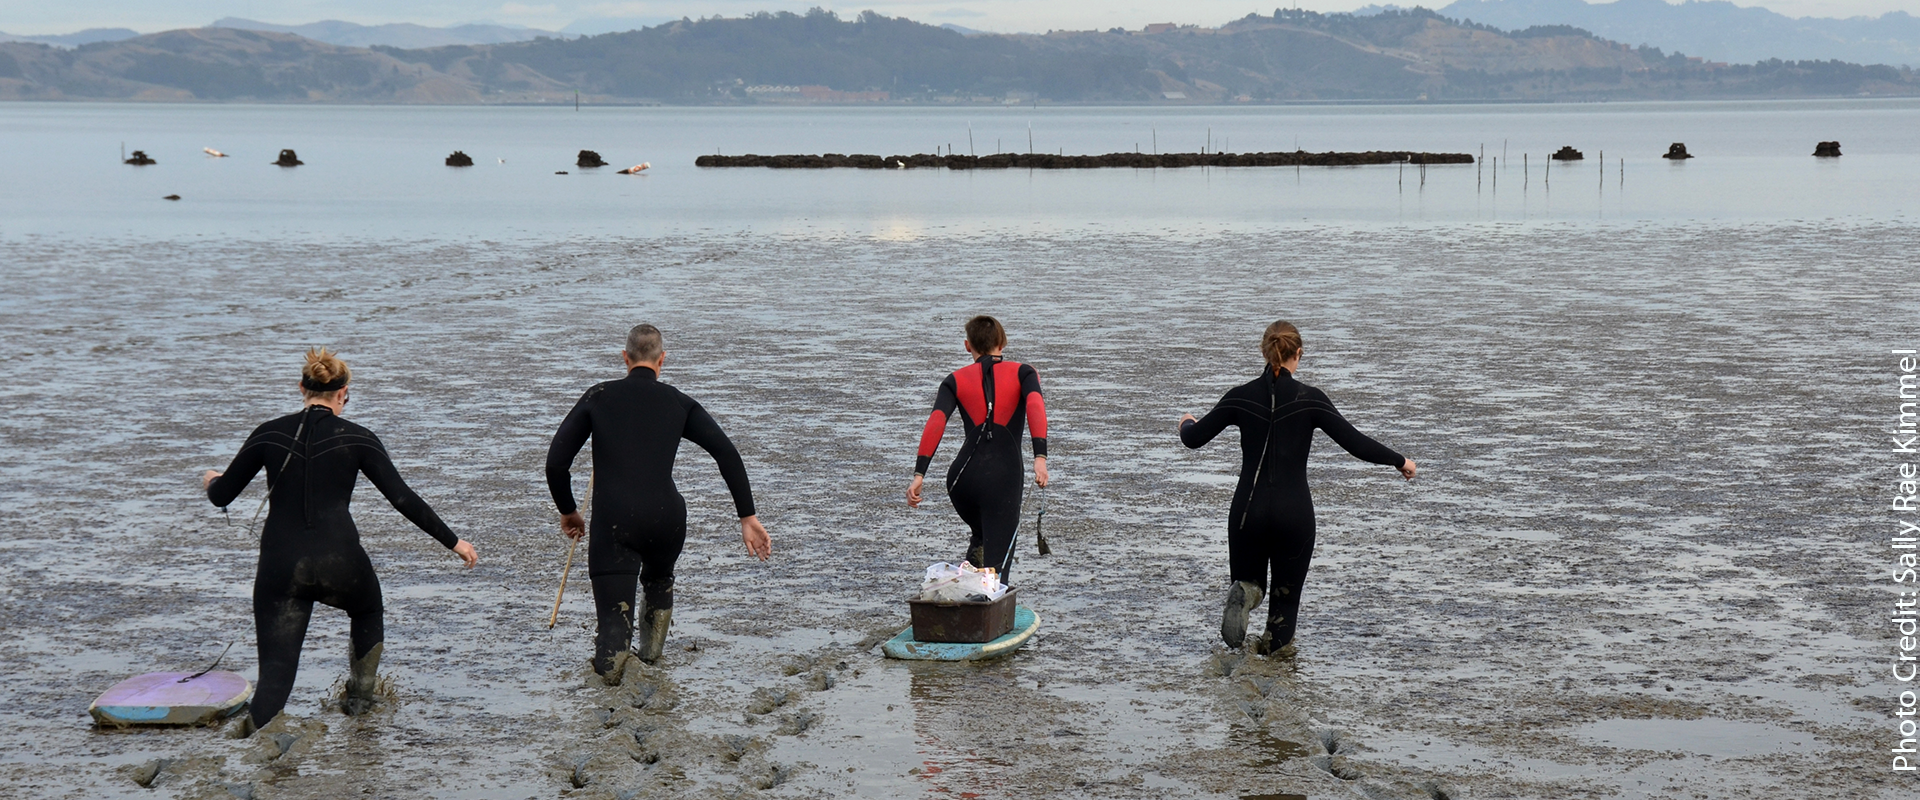 researchers  seed eelgrass to restore a wetland in san francisco bay